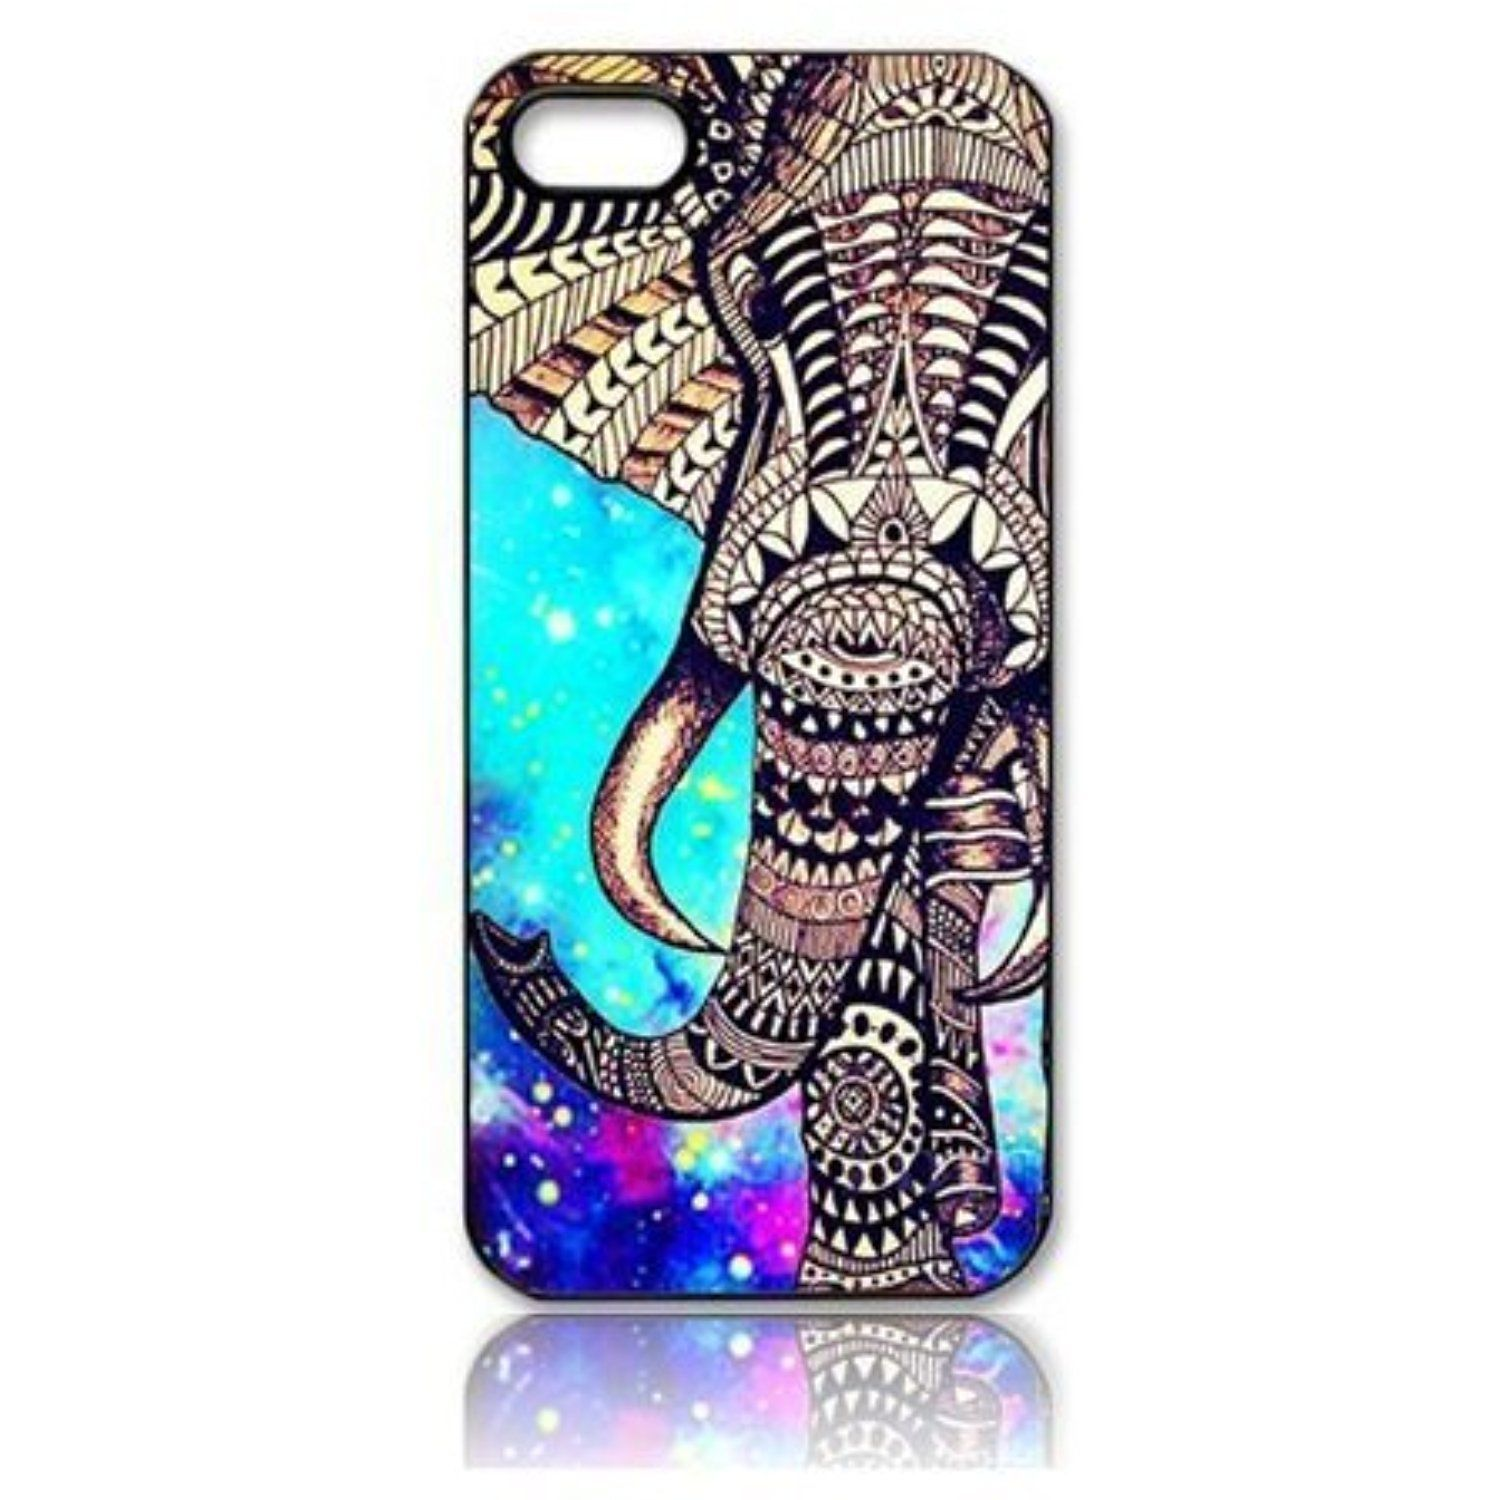 Superb Alexism Bluesky Striking Indian Elephant Galaxy Star Pattern Skin Case  Cover For Iphone 5g 5 5s